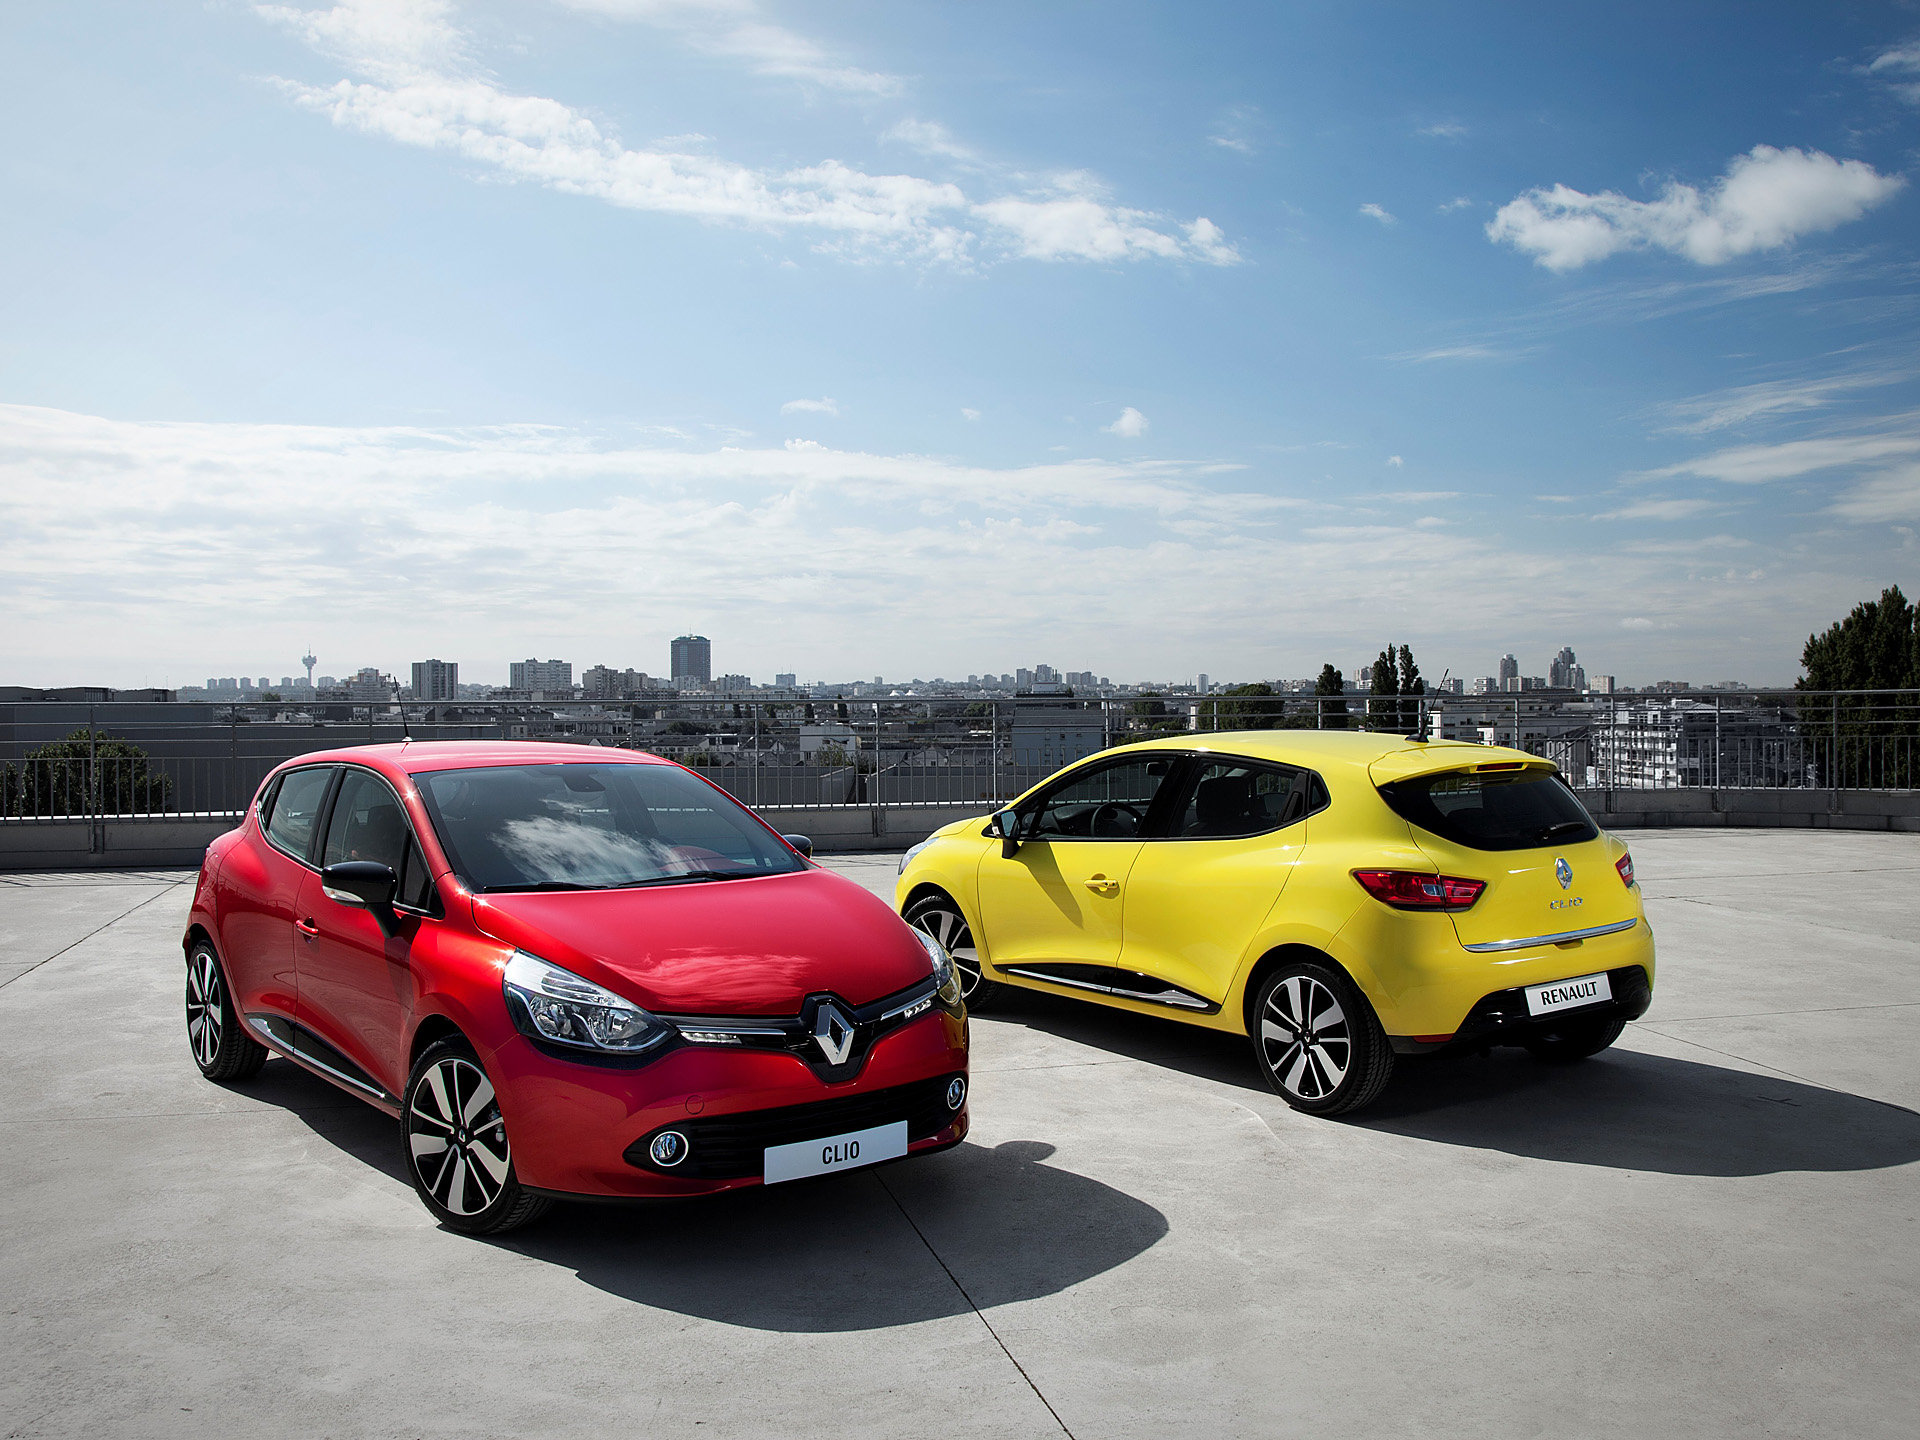 Free Renault Clio high quality wallpaper ID:250166 for hd 1920x1440 PC